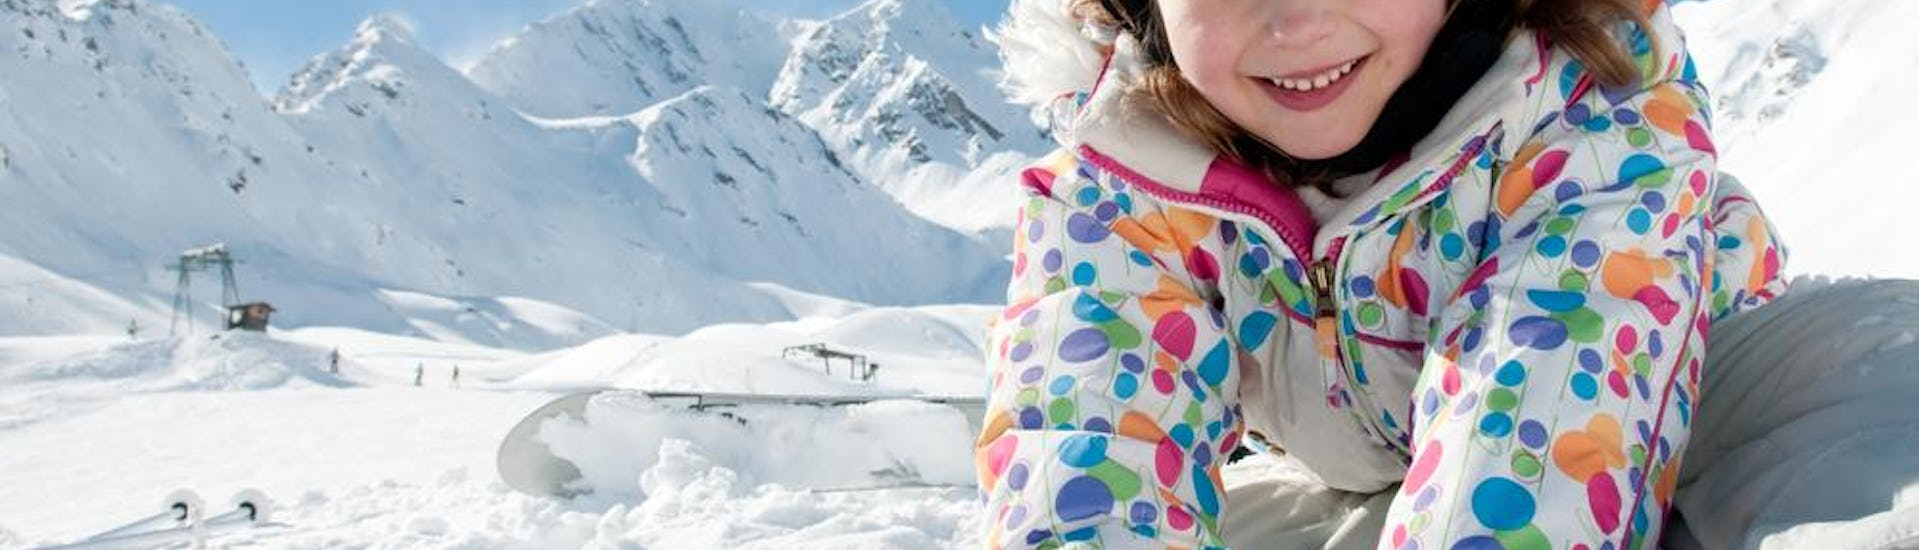 """Ski Lessons for Kids """"ALL in ONE""""(3-4 years) - All Levels"""